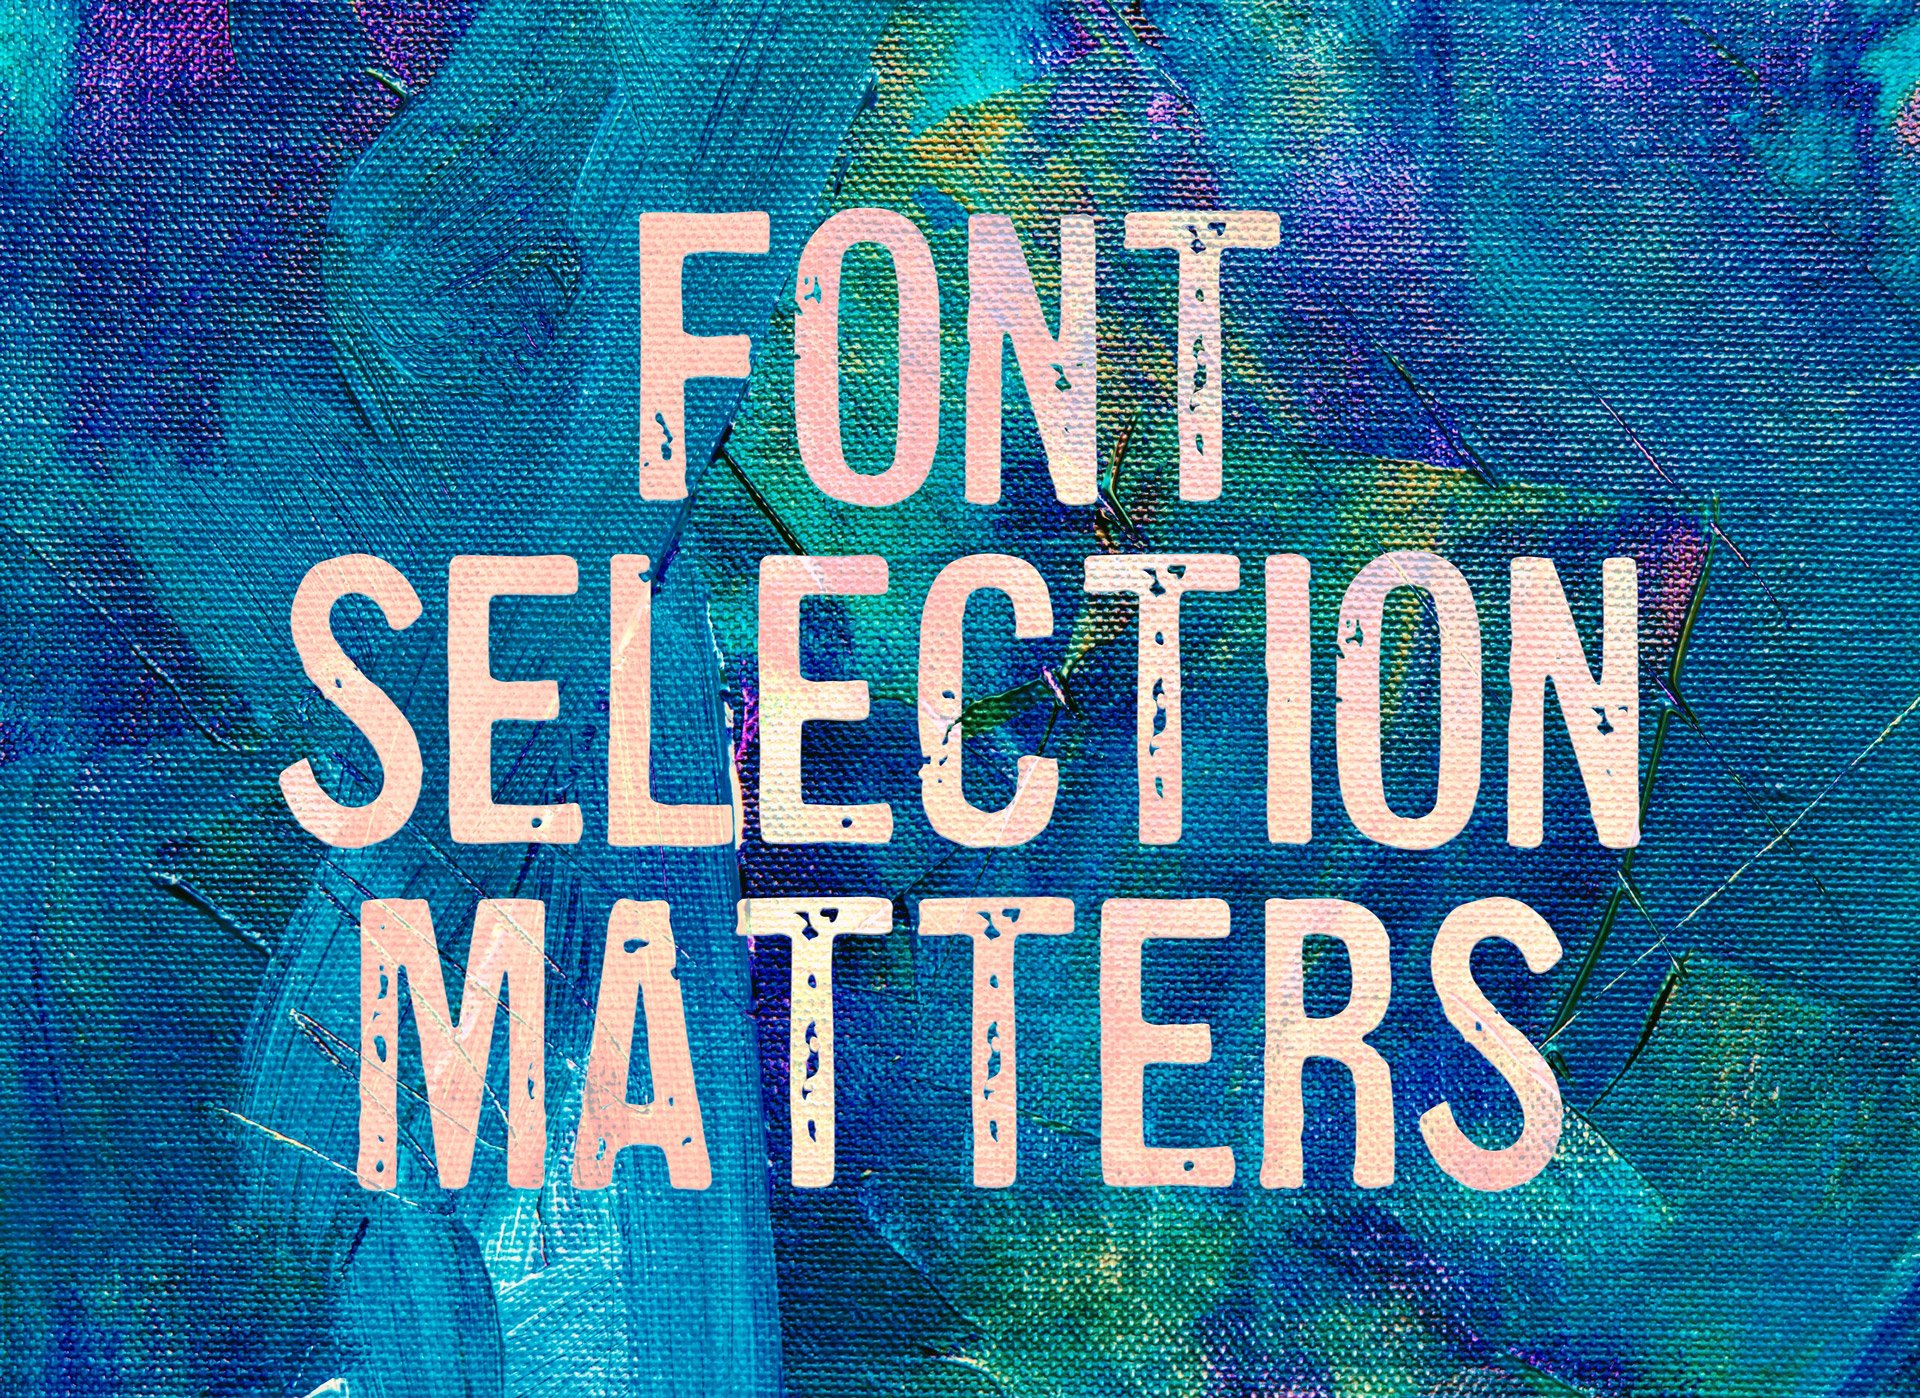 Selecting the Right Fonts Can Improve Website Conversions